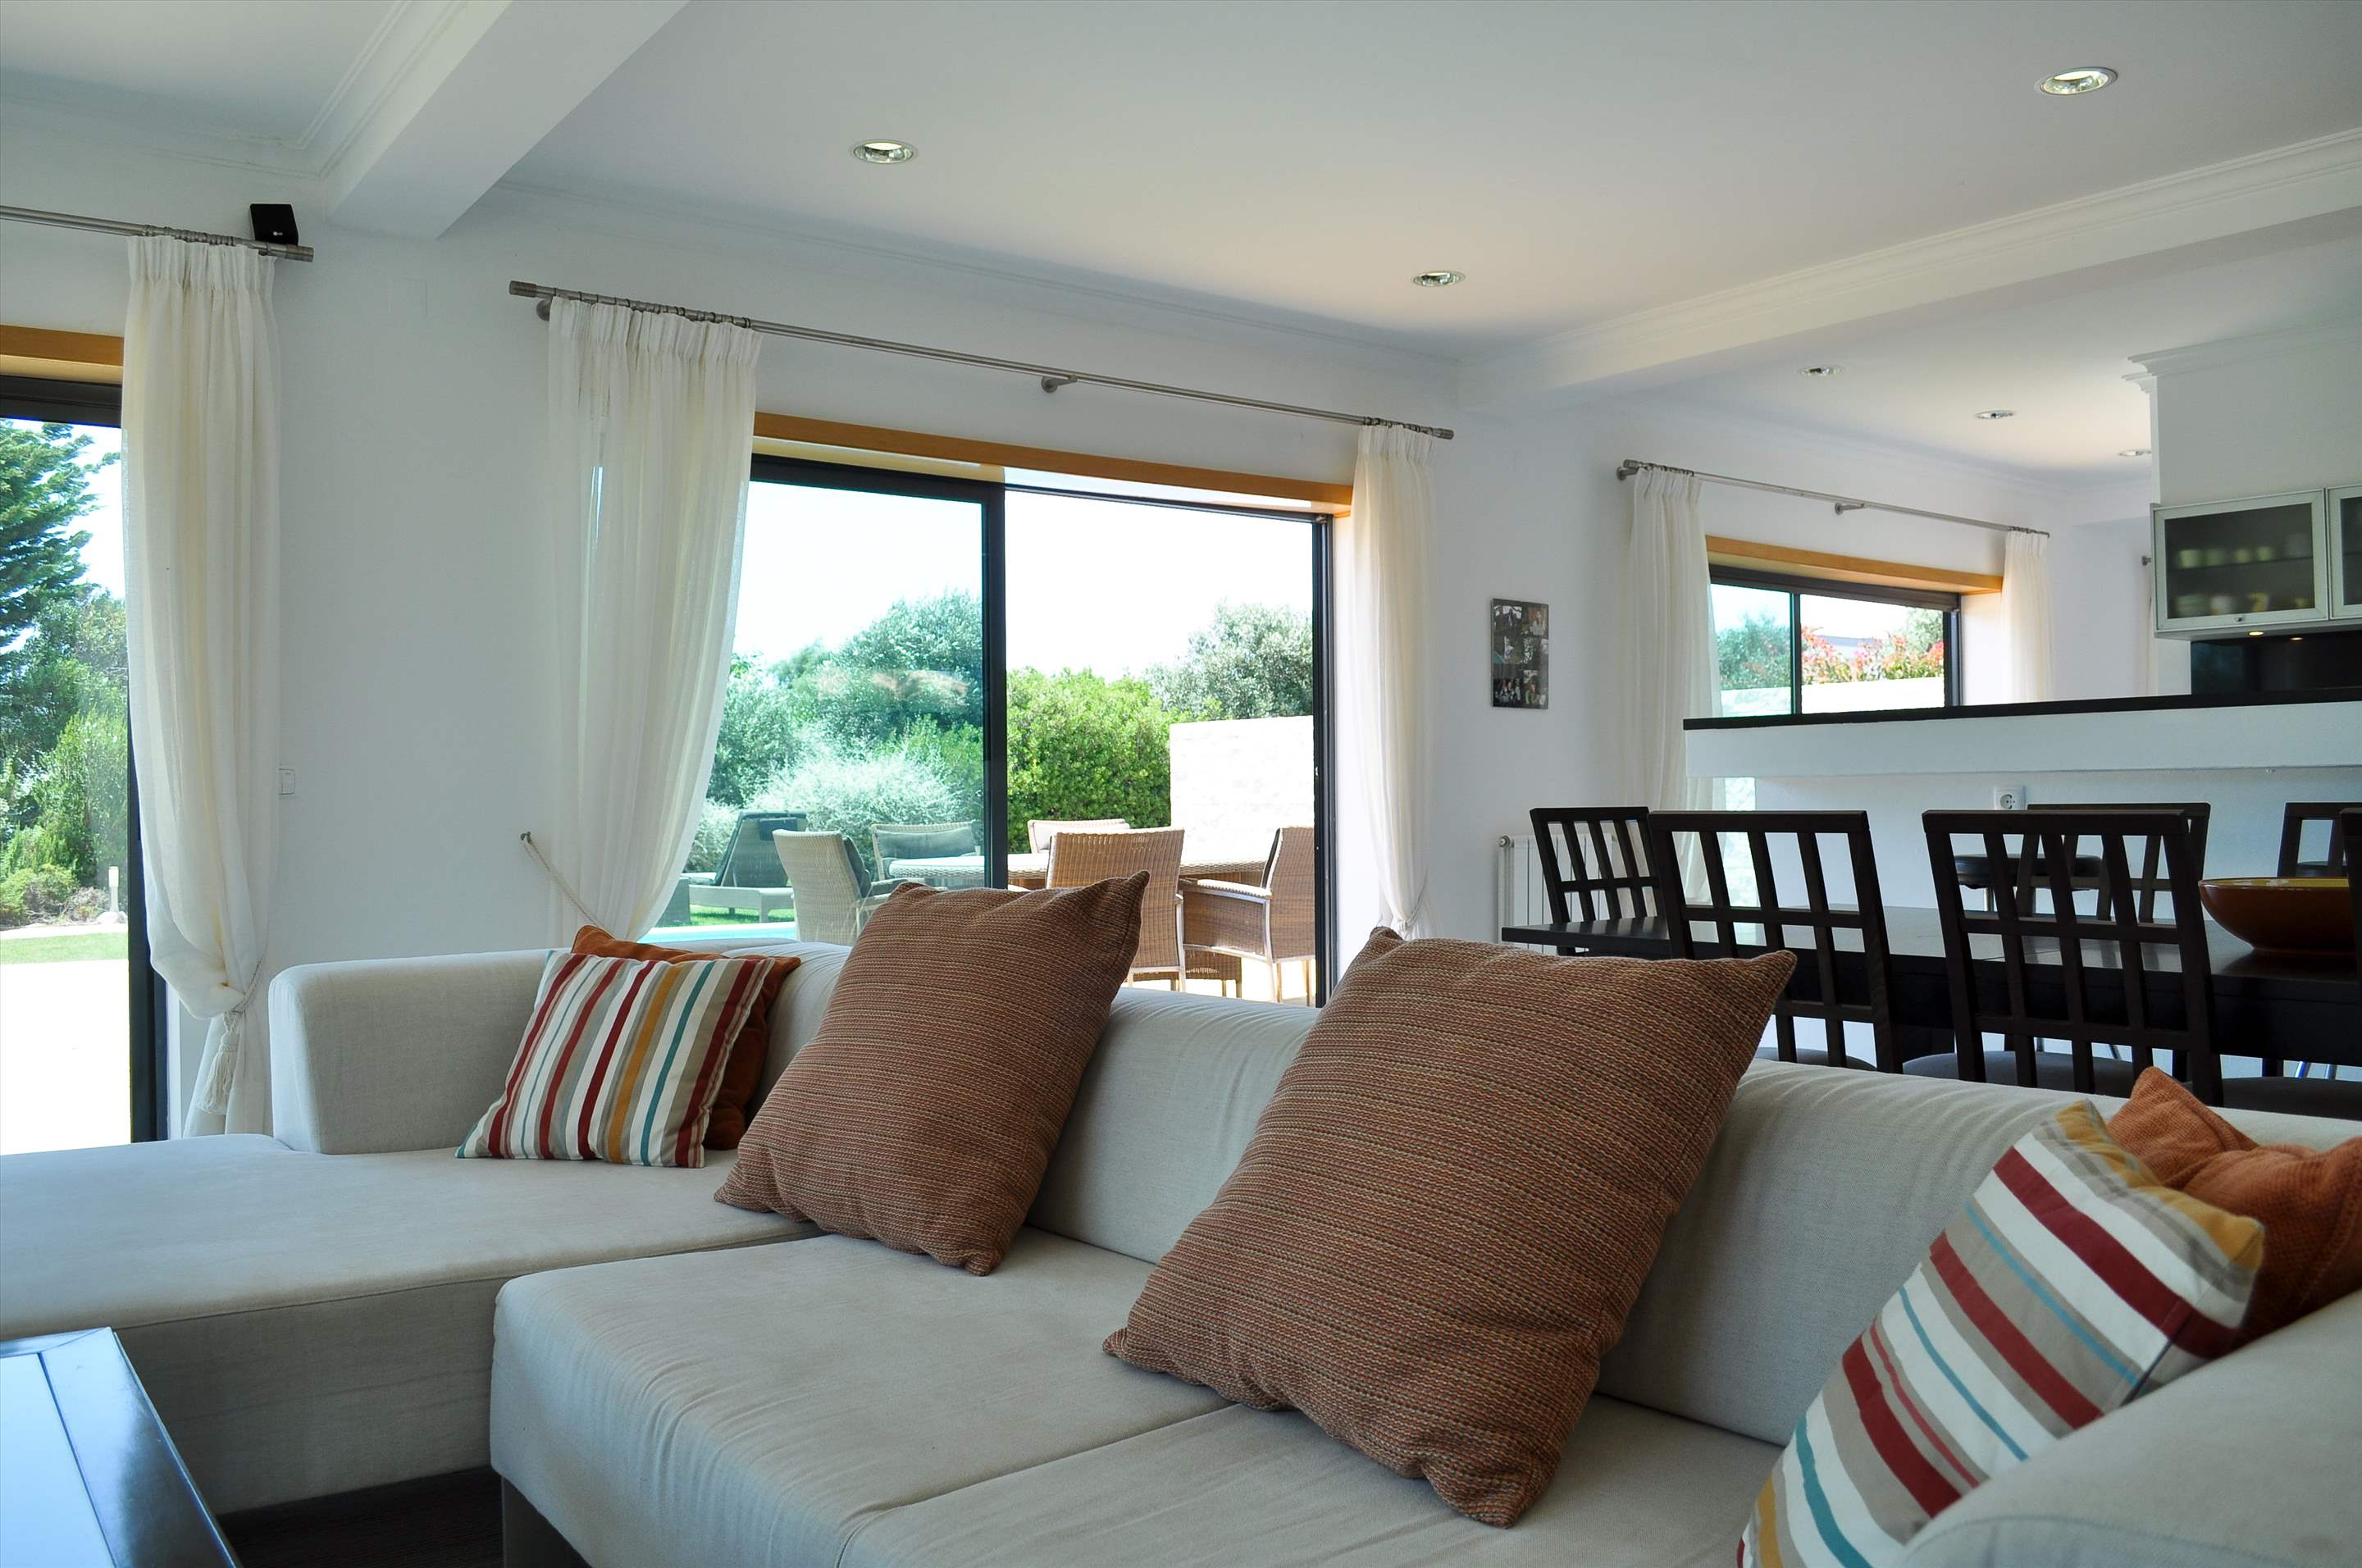 Martinhal Luxury Villa No.77, 5 bedroom villa in Martinhal Sagres, Algarve Photo #14